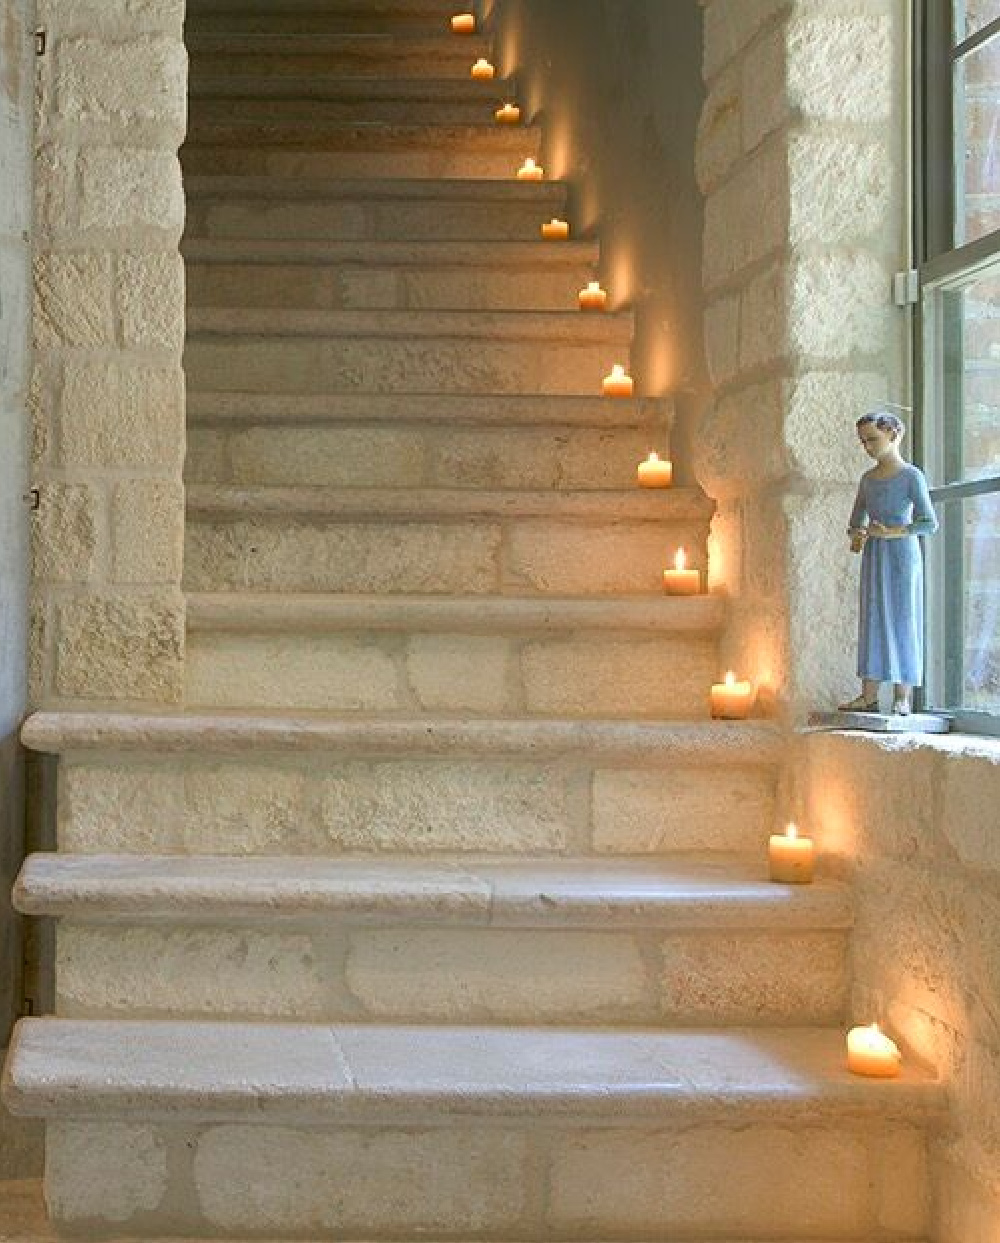 Breathtaking French limestone staircase in Ruth Gay's country French home - Chateau Domingue.